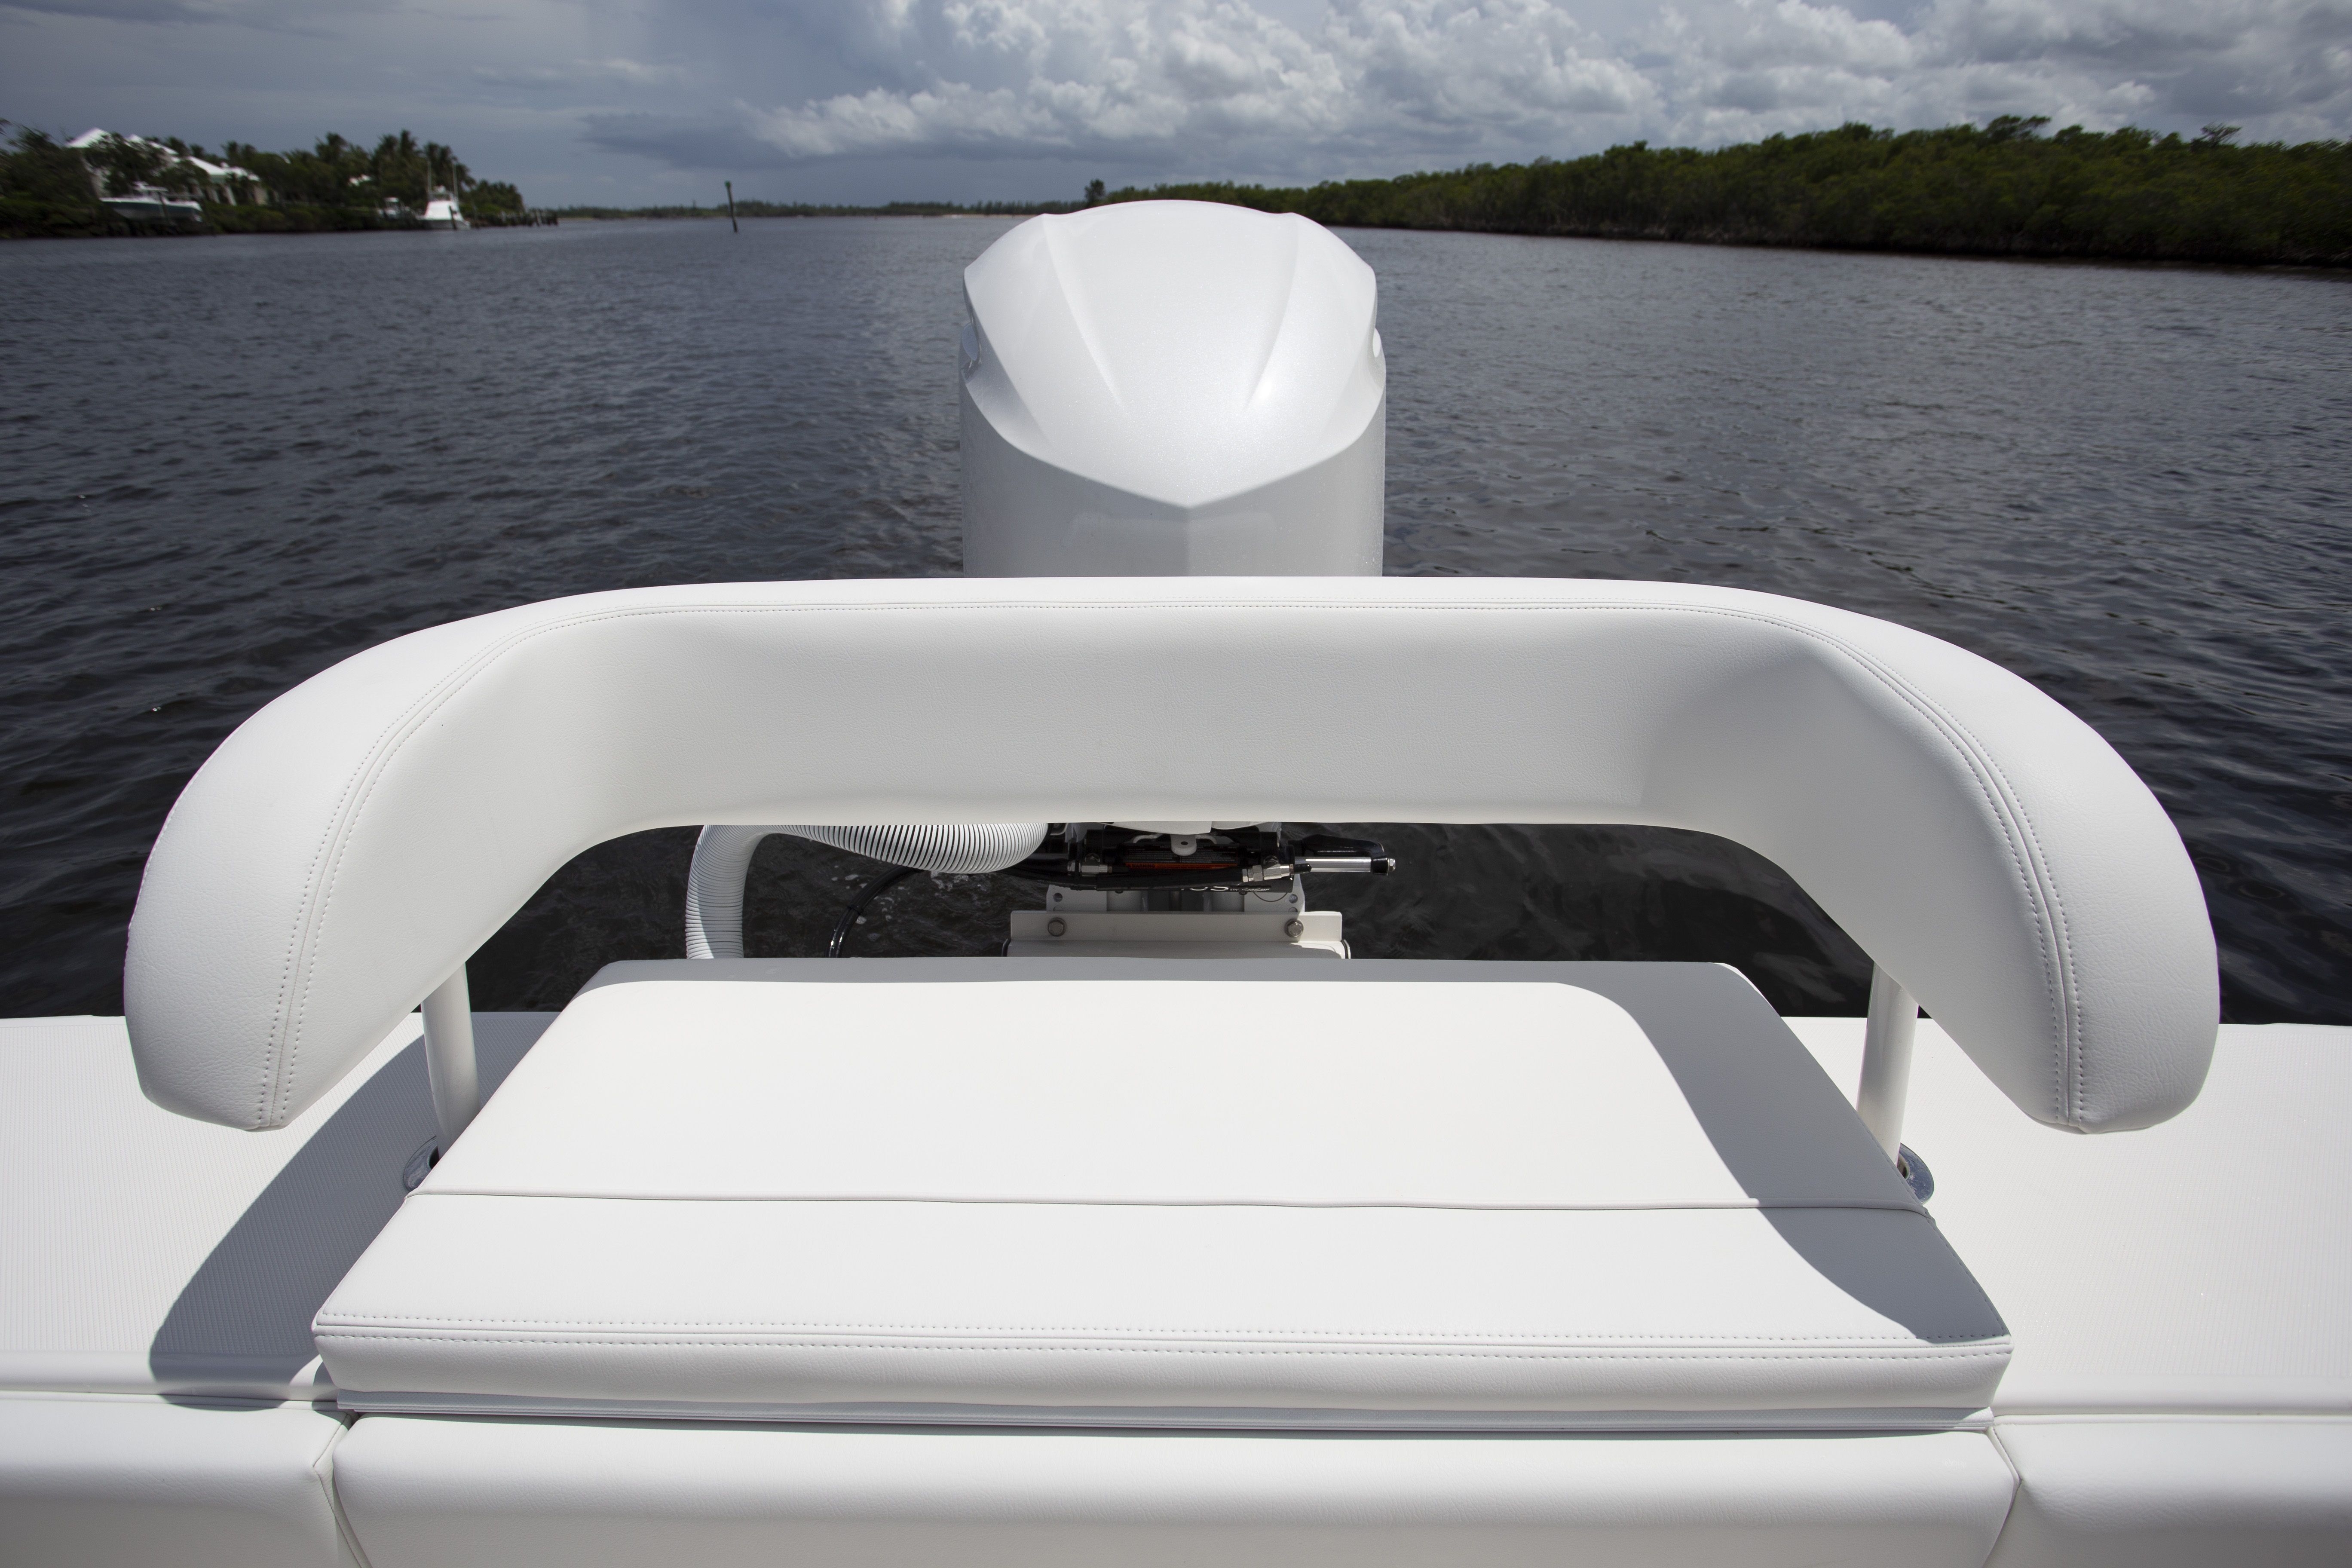 Jupiter 25 Bay Transom Seat Review